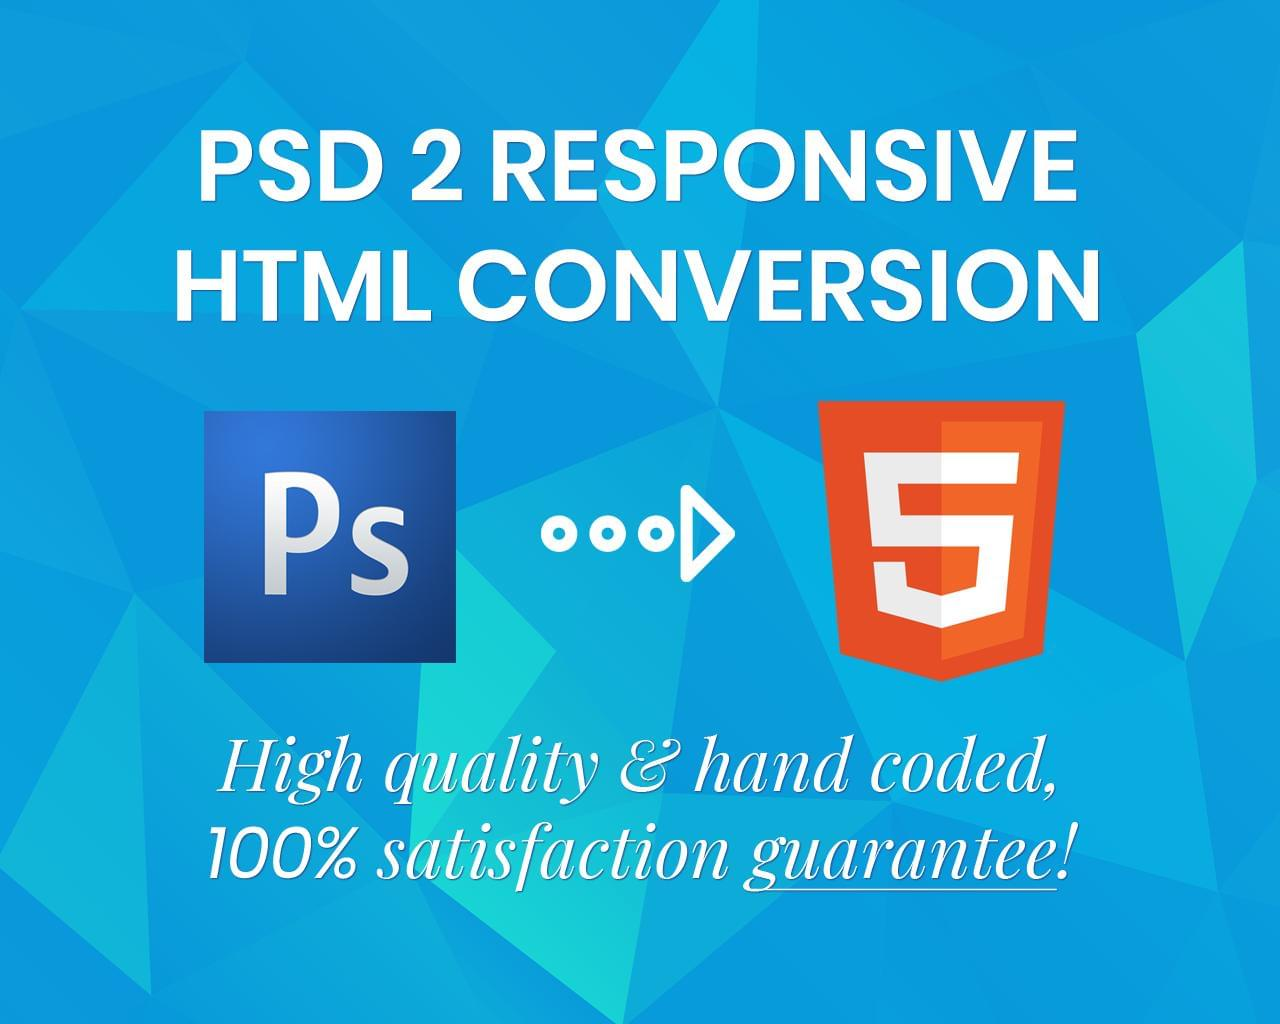 PSD to HTML Conversion (Responsive, Hand Coded and W3C validated) by uipro - 113317